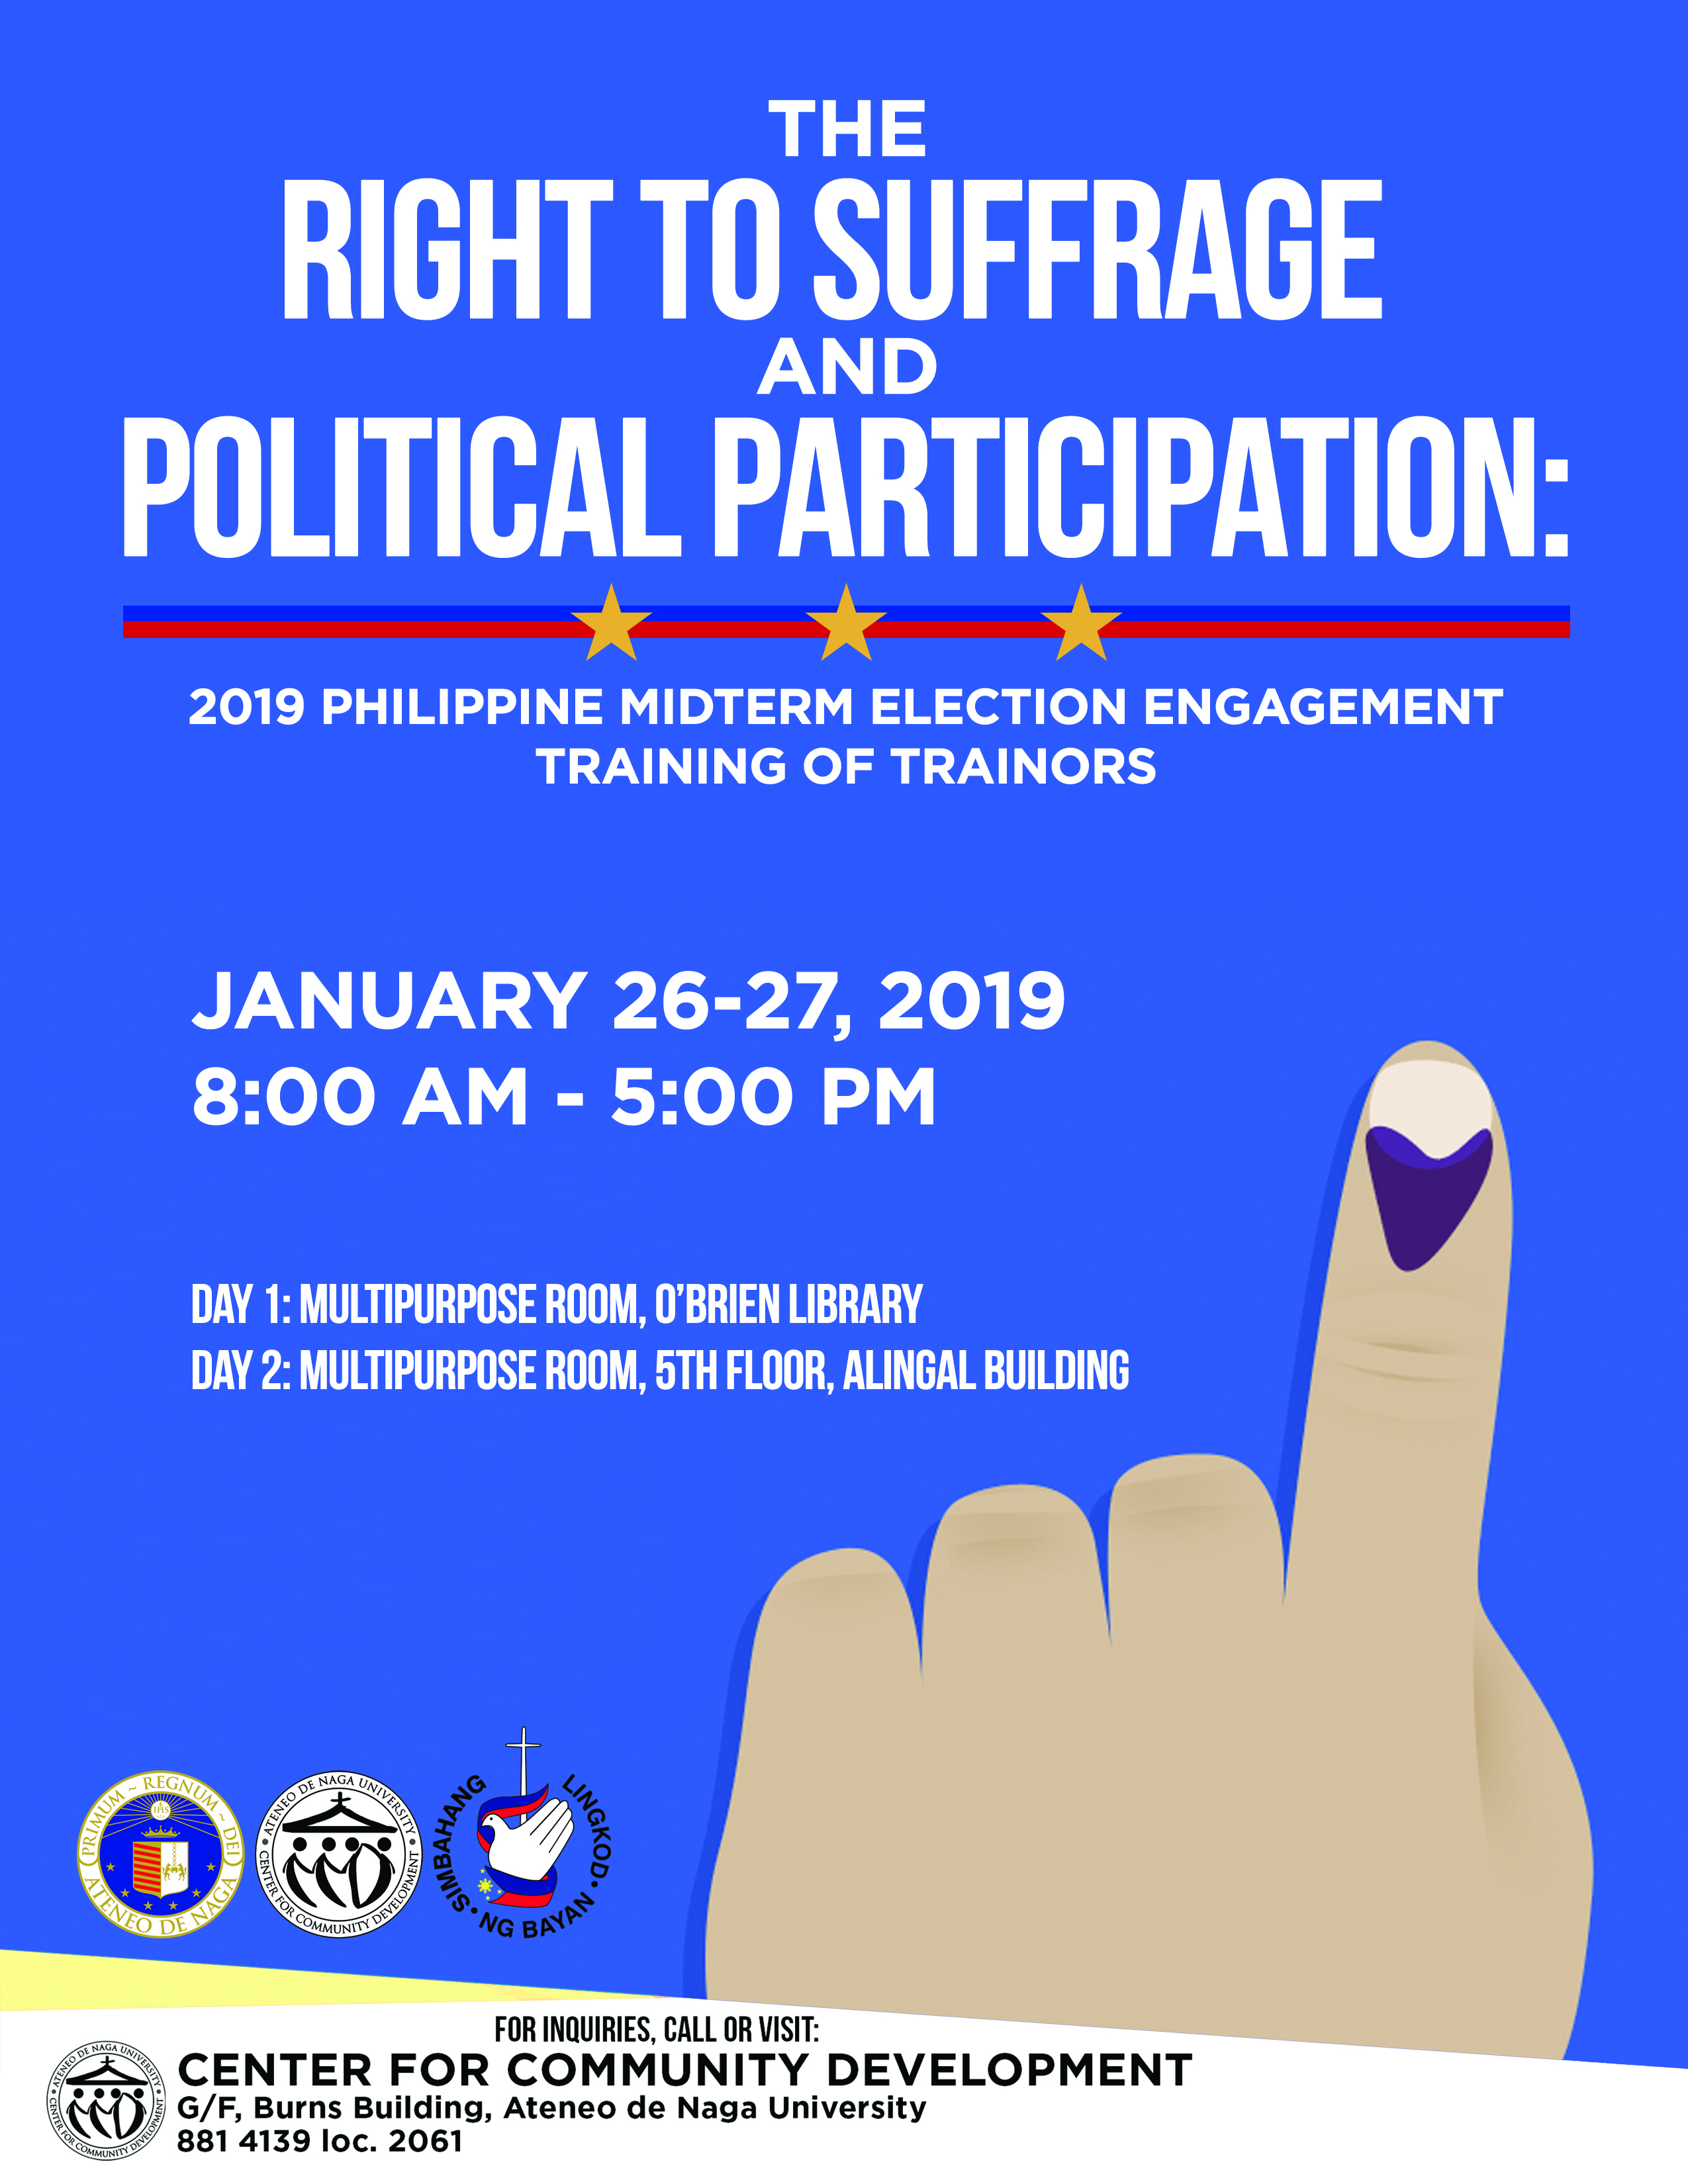 2019 Philippine Midterm Election Engagement Training of